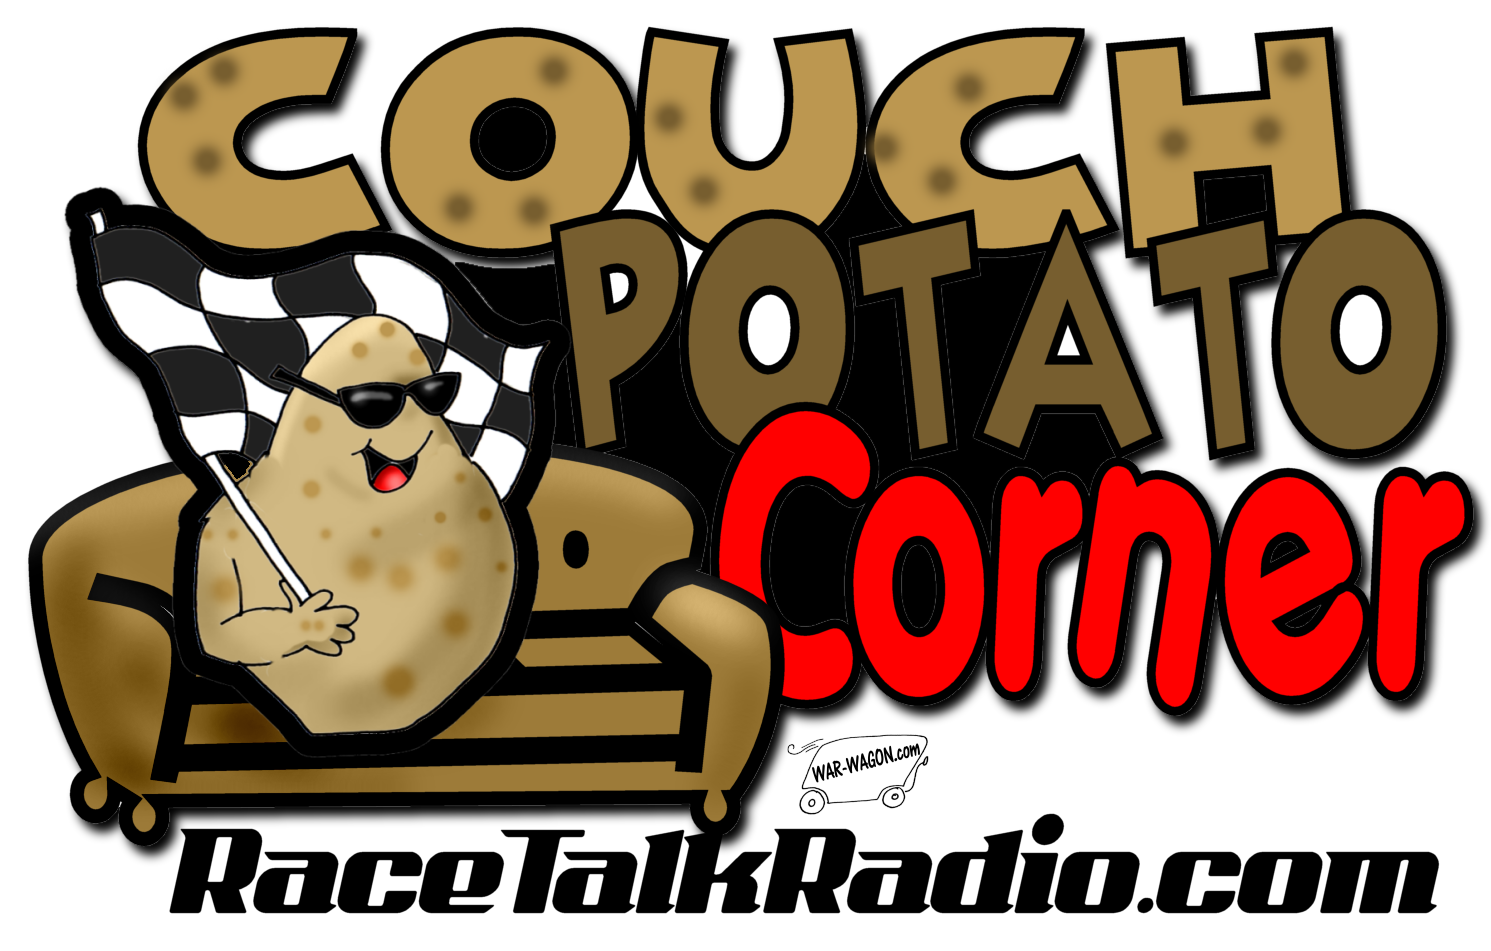 Race Talk Radio » Couch Potato Corner.